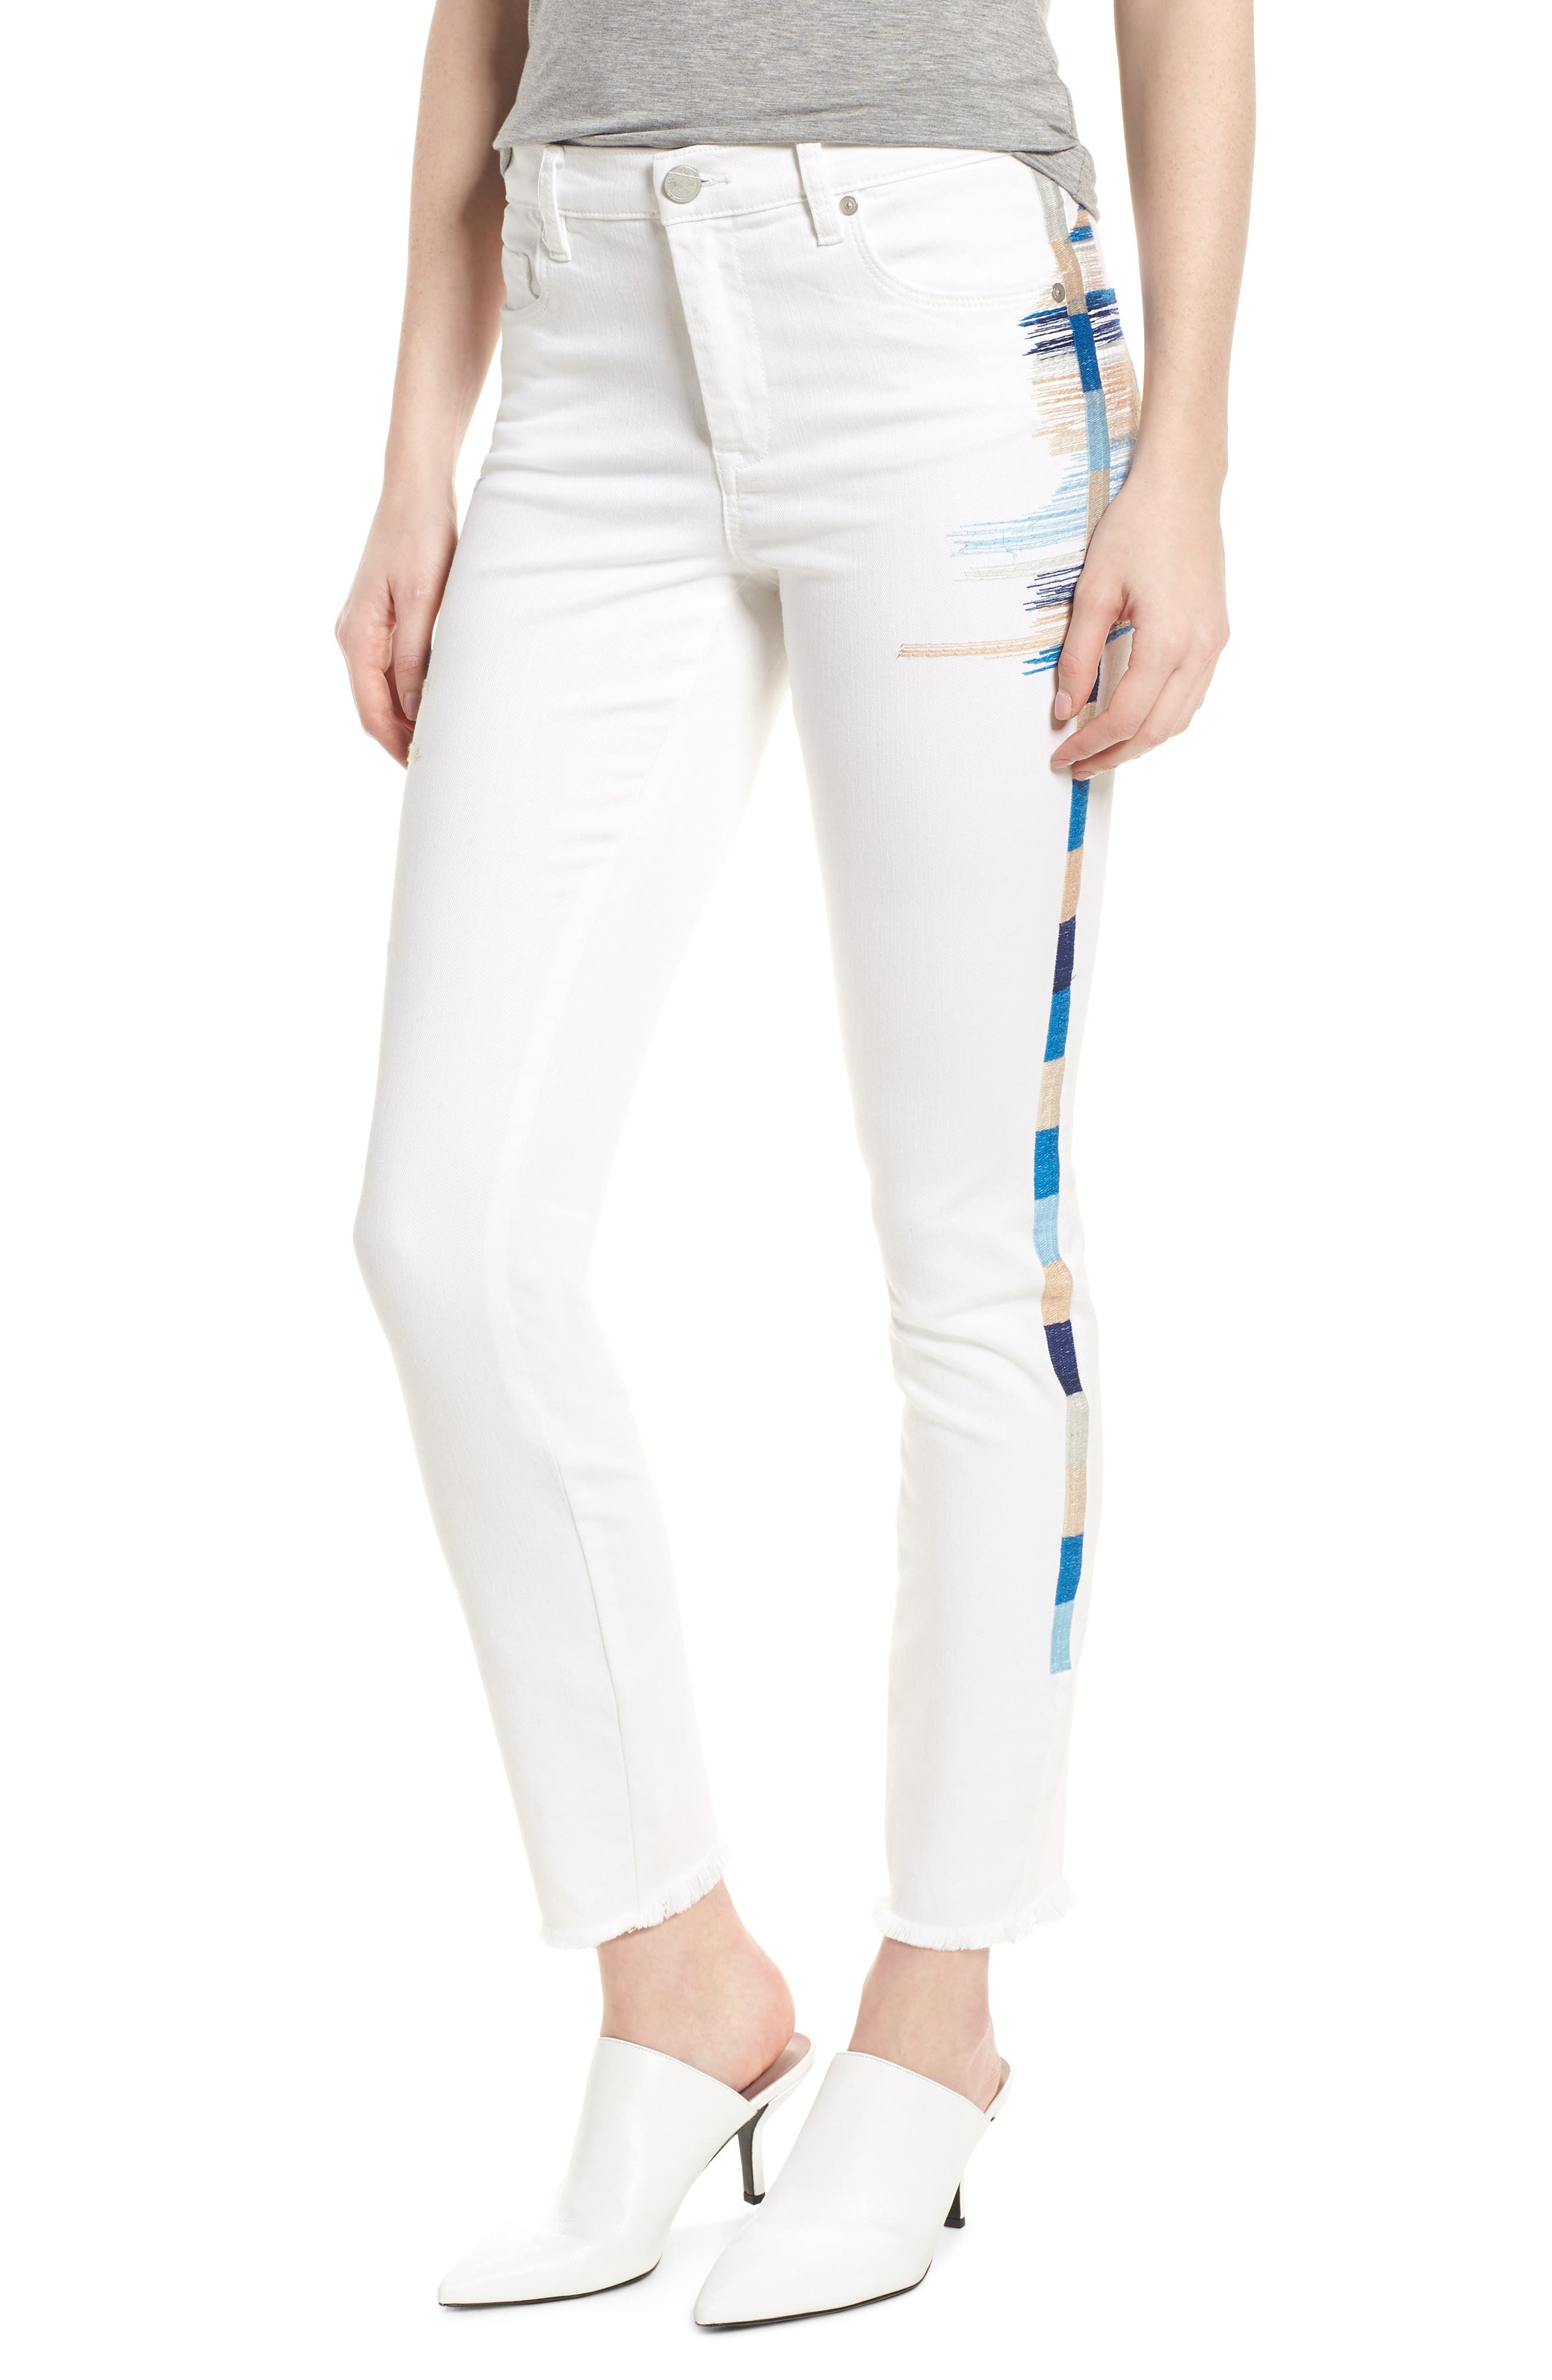 Bond Embroidered Skinny Jeans,                             Main thumbnail 1, color,                             110